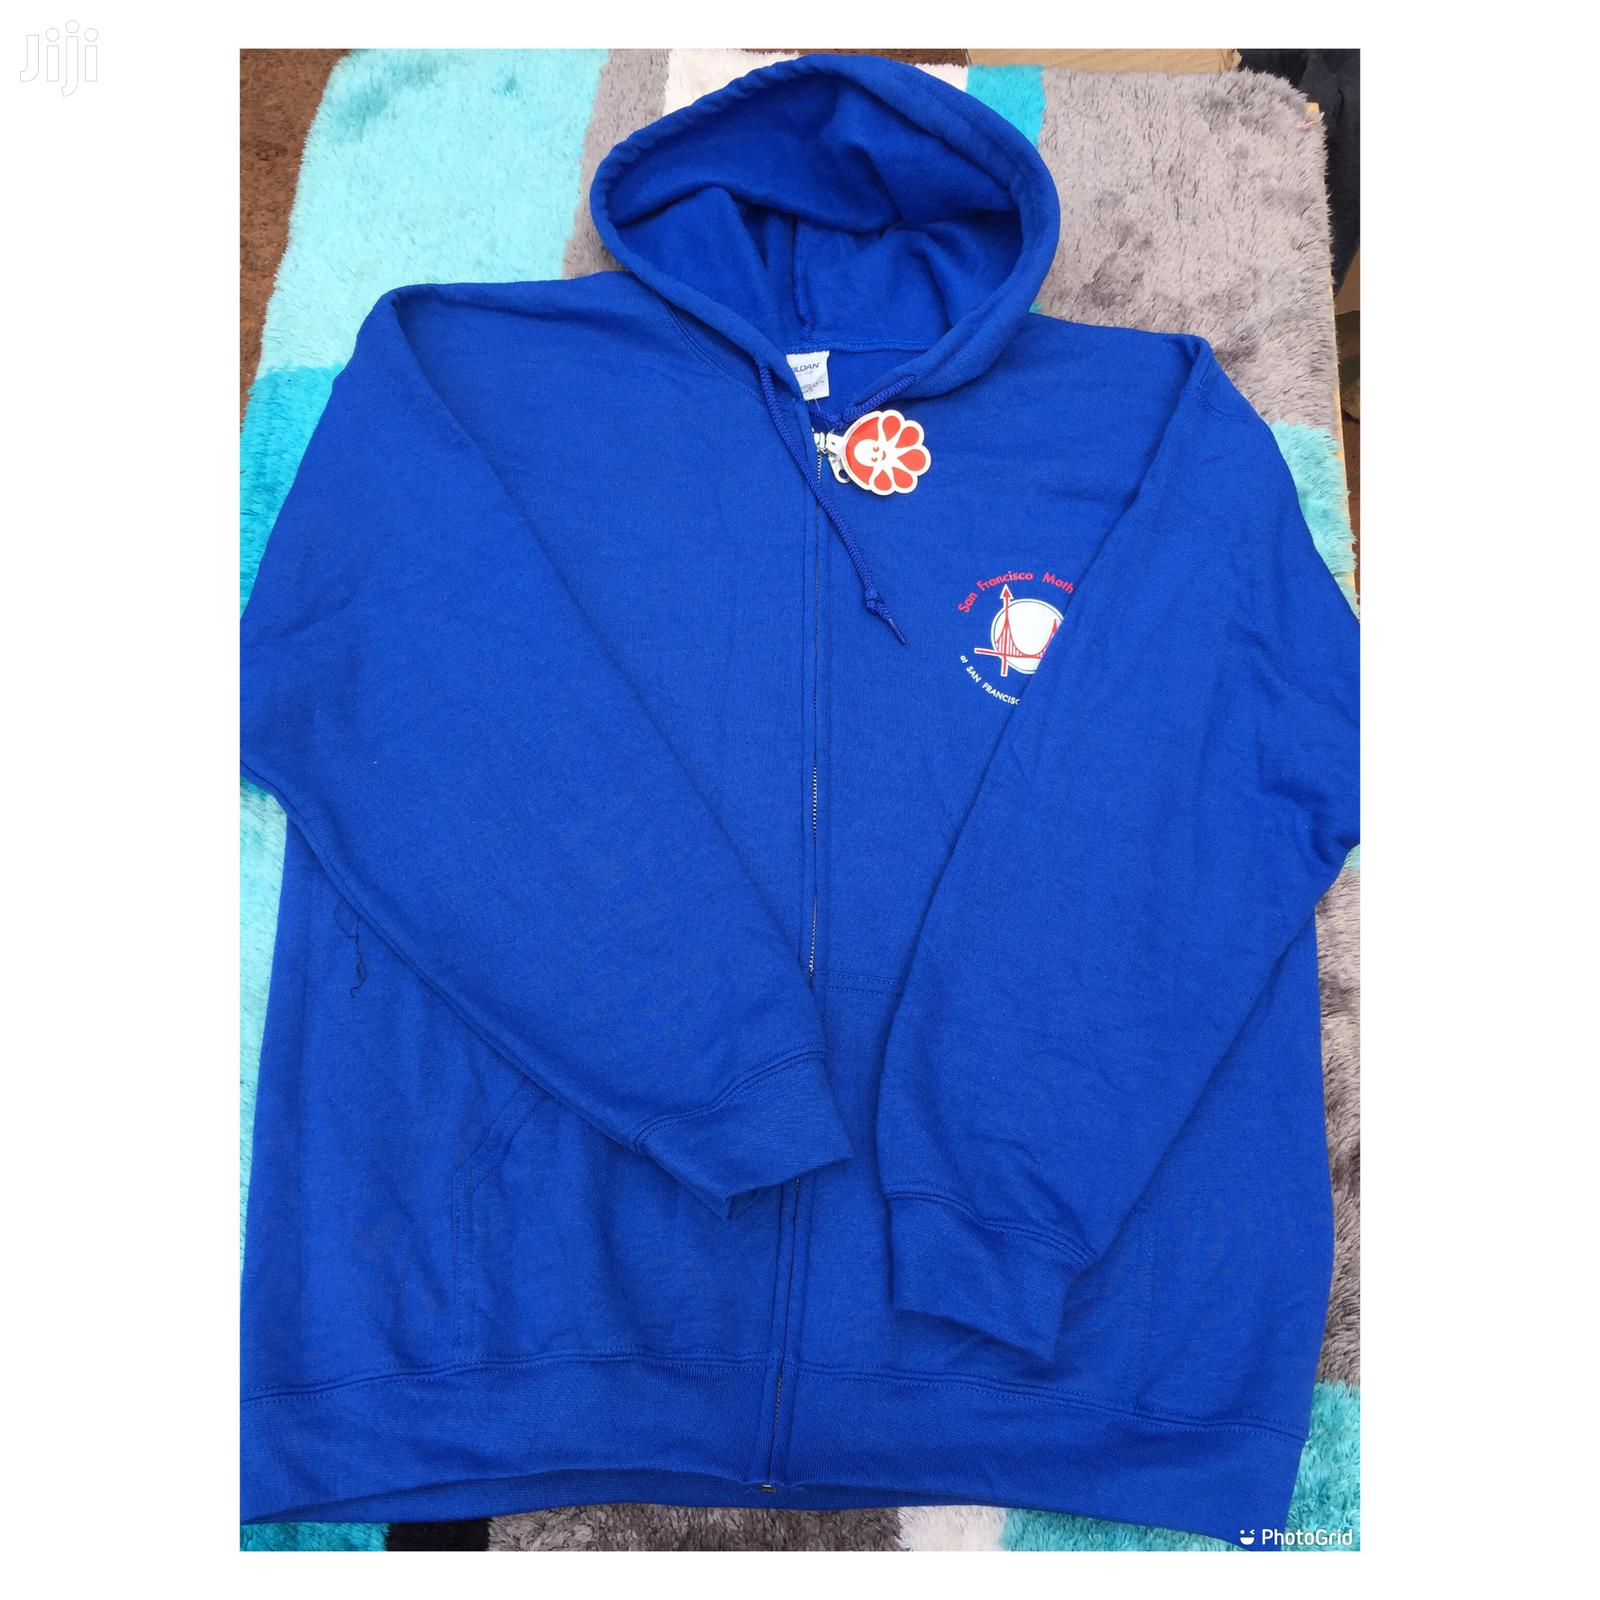 Nice Crop Hoodies And Full Hoodies For Ladies And Gents | Clothing for sale in Accra Metropolitan, Greater Accra, Ghana